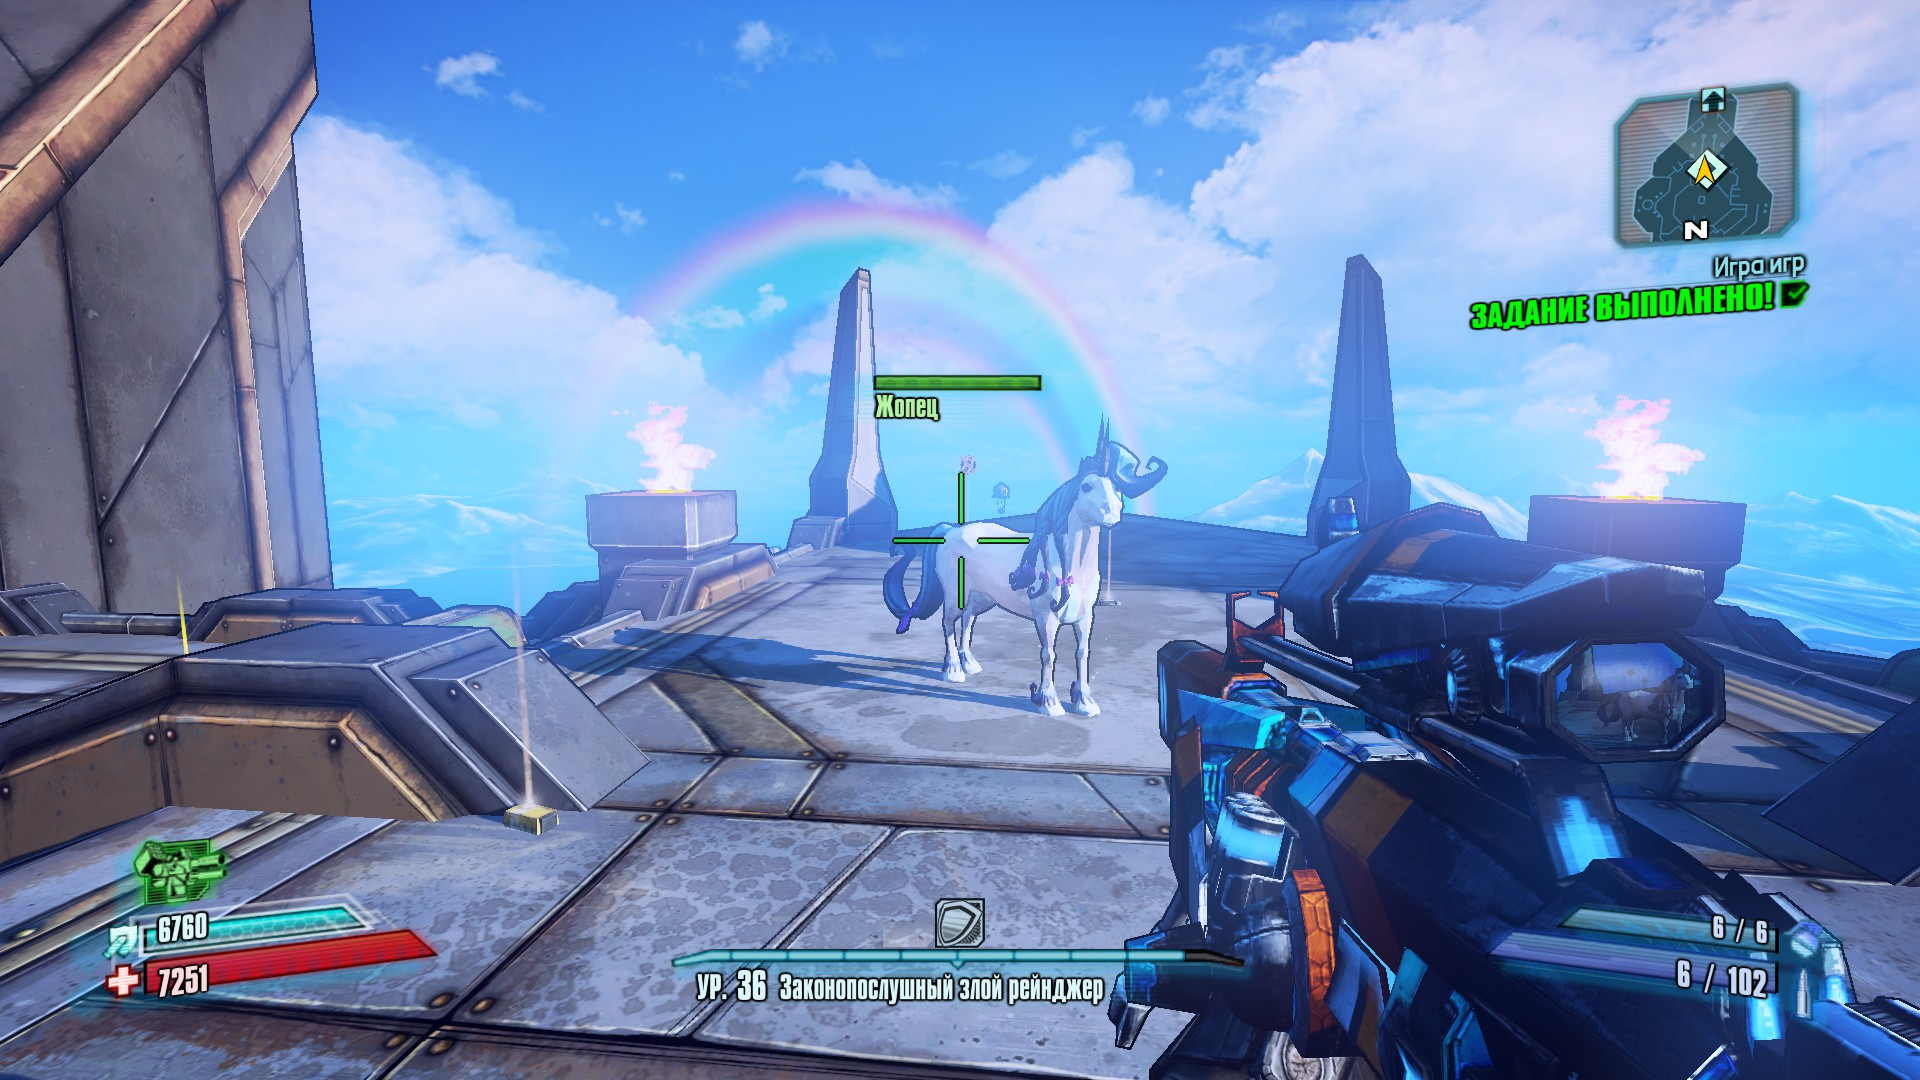 217490_screenshots_20190106214723_1.jpg - Borderlands 2